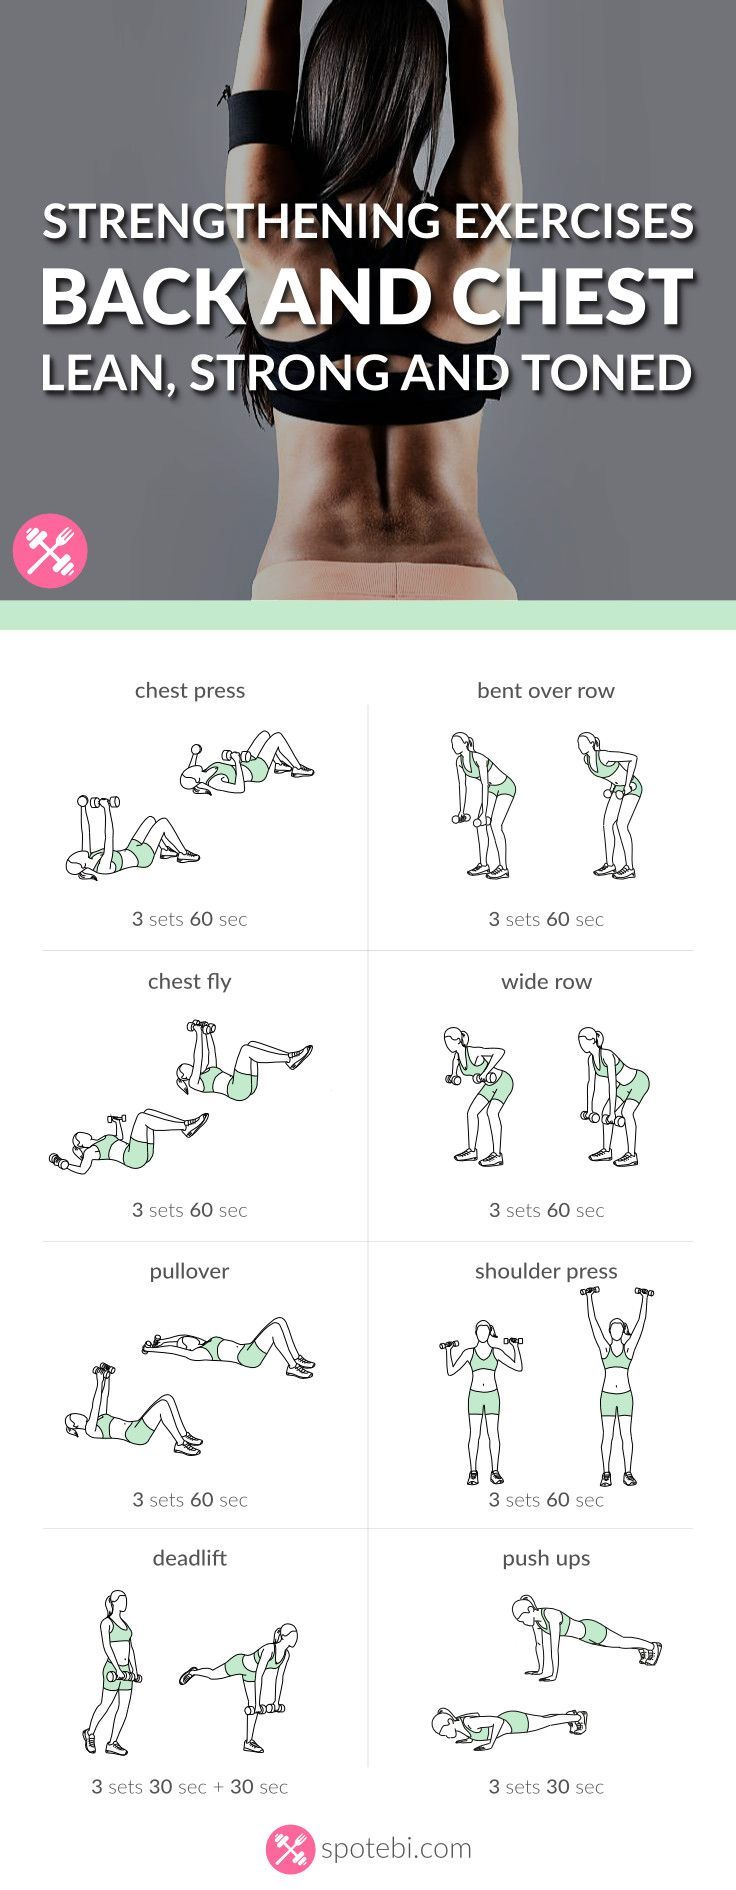 The secret to building sexier biceps for women and men Lift your breasts naturally! Try these chest and back strengthening exercises for women to help you tone, firm and lift your chest and improve your posture. www.spotebi.com/...